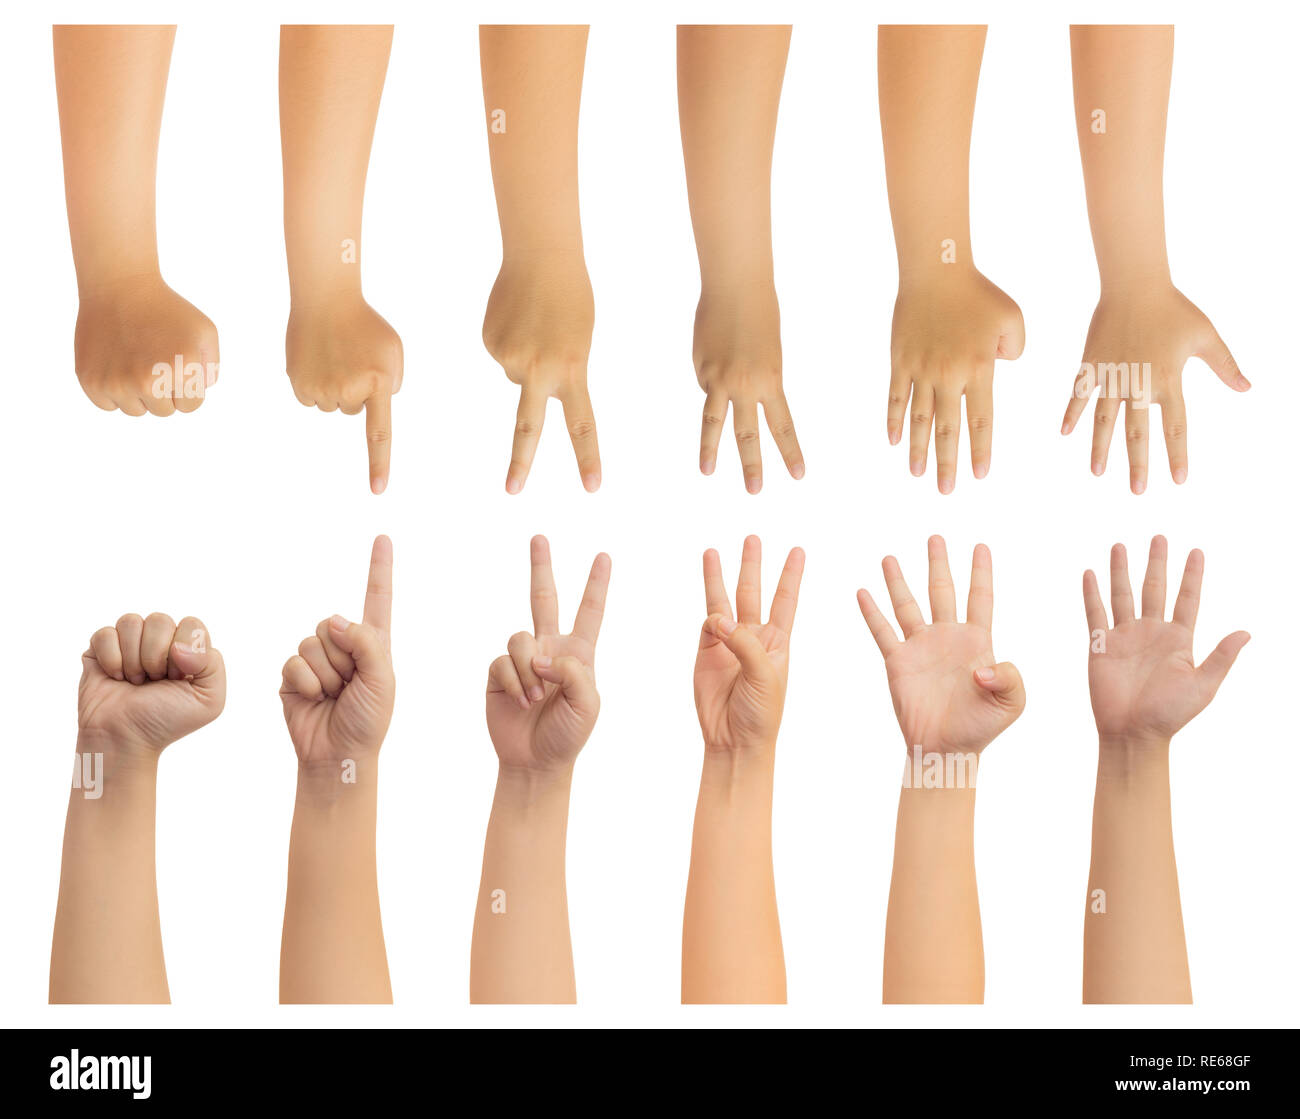 Human hand in reach out and counting number zero, one, two, three, four and five fingers gesture isolate on white with clipping path, High resolution  - Stock Image